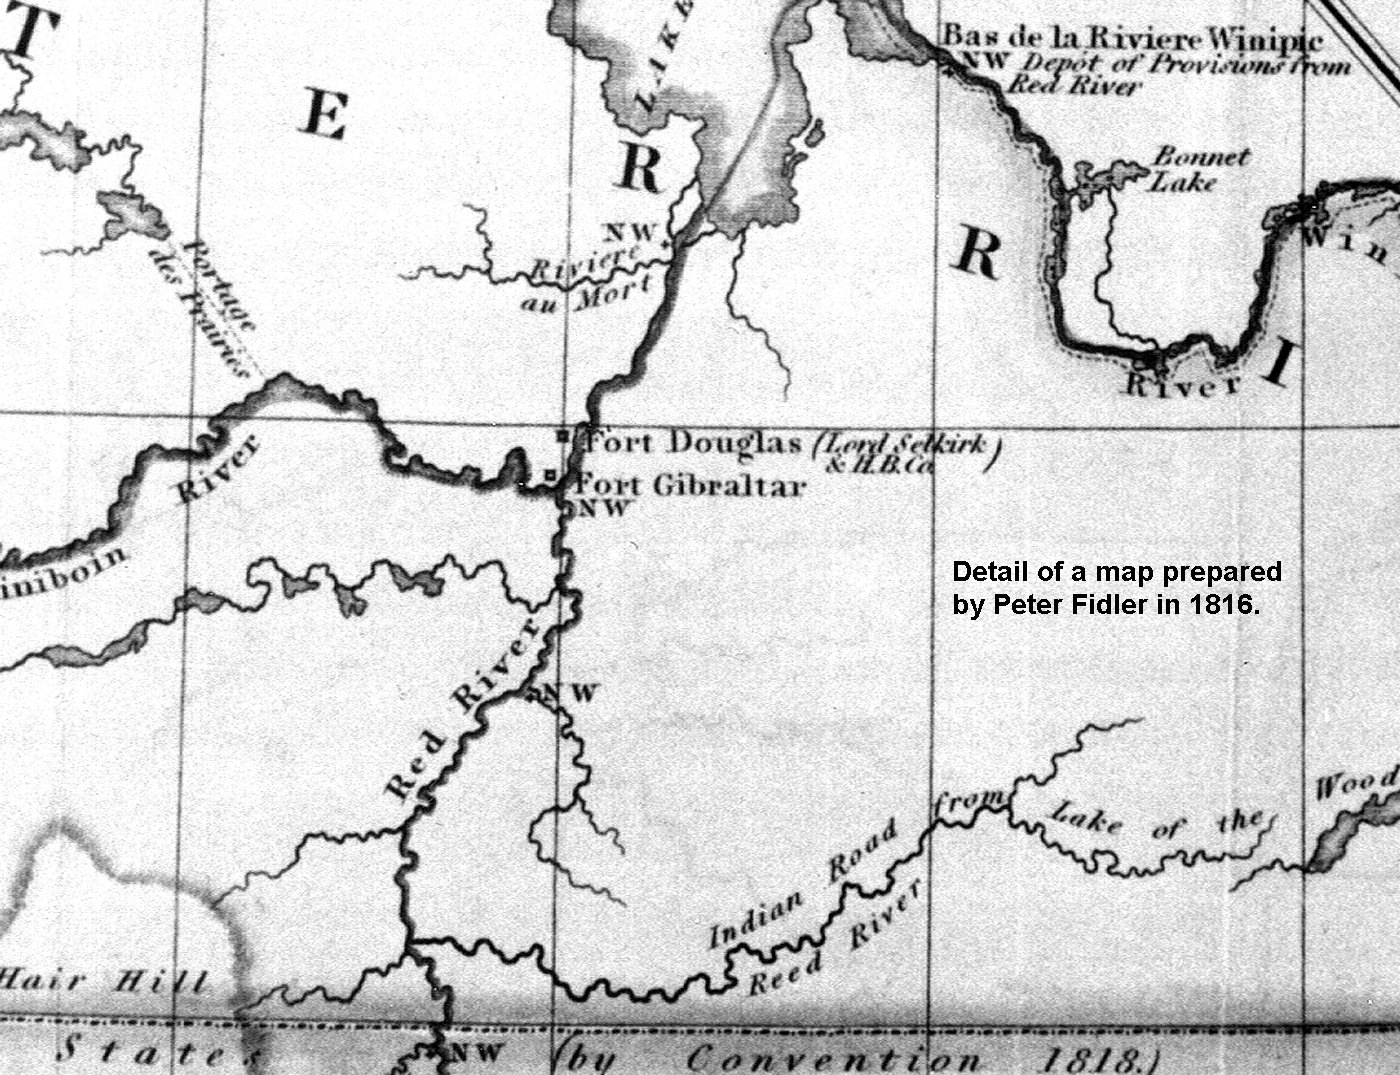 1816 North West Co forts in Red River basin